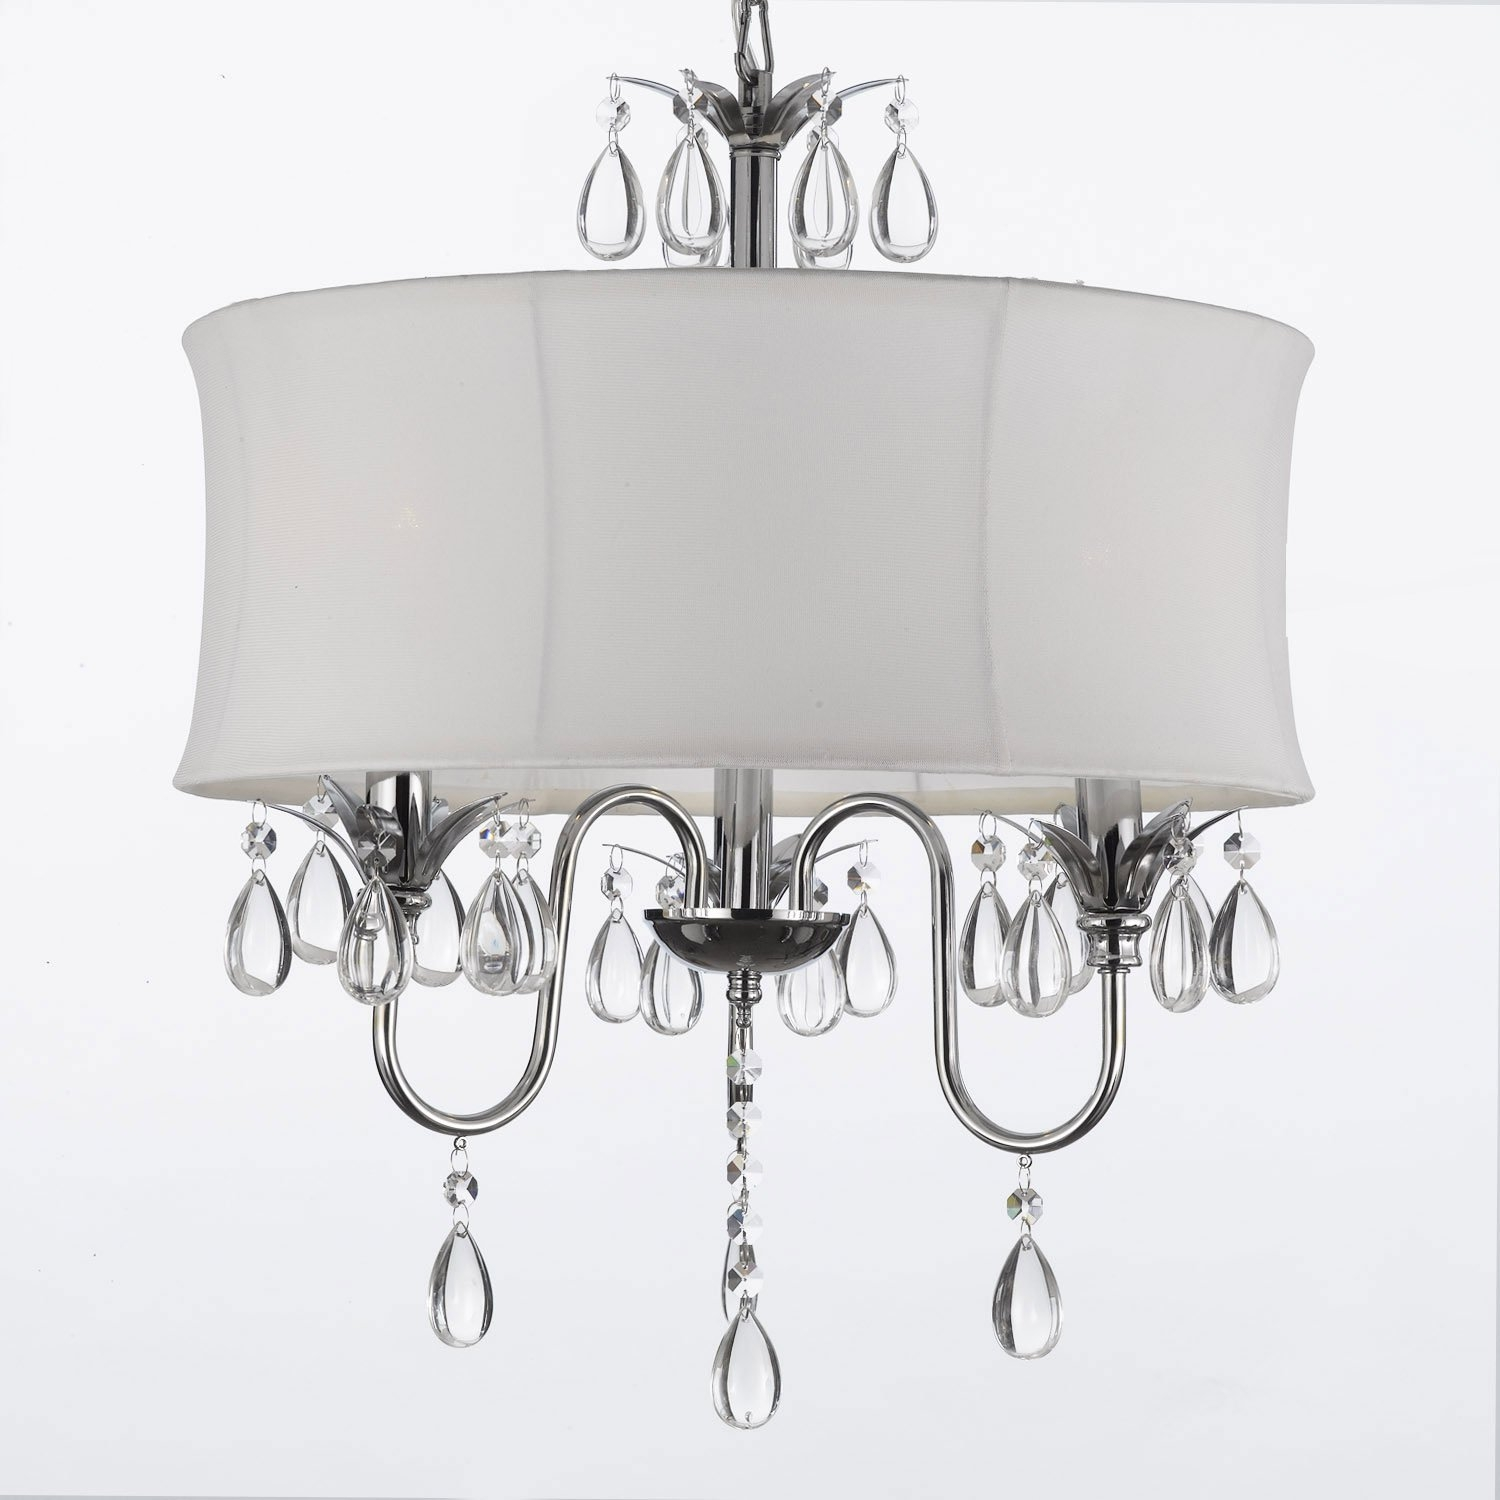 Go A7 White8343 White Drum Shade Crystal Ceiling Chandelier With Regard To Drum Lamp Shades For Chandeliers (View 22 of 25)